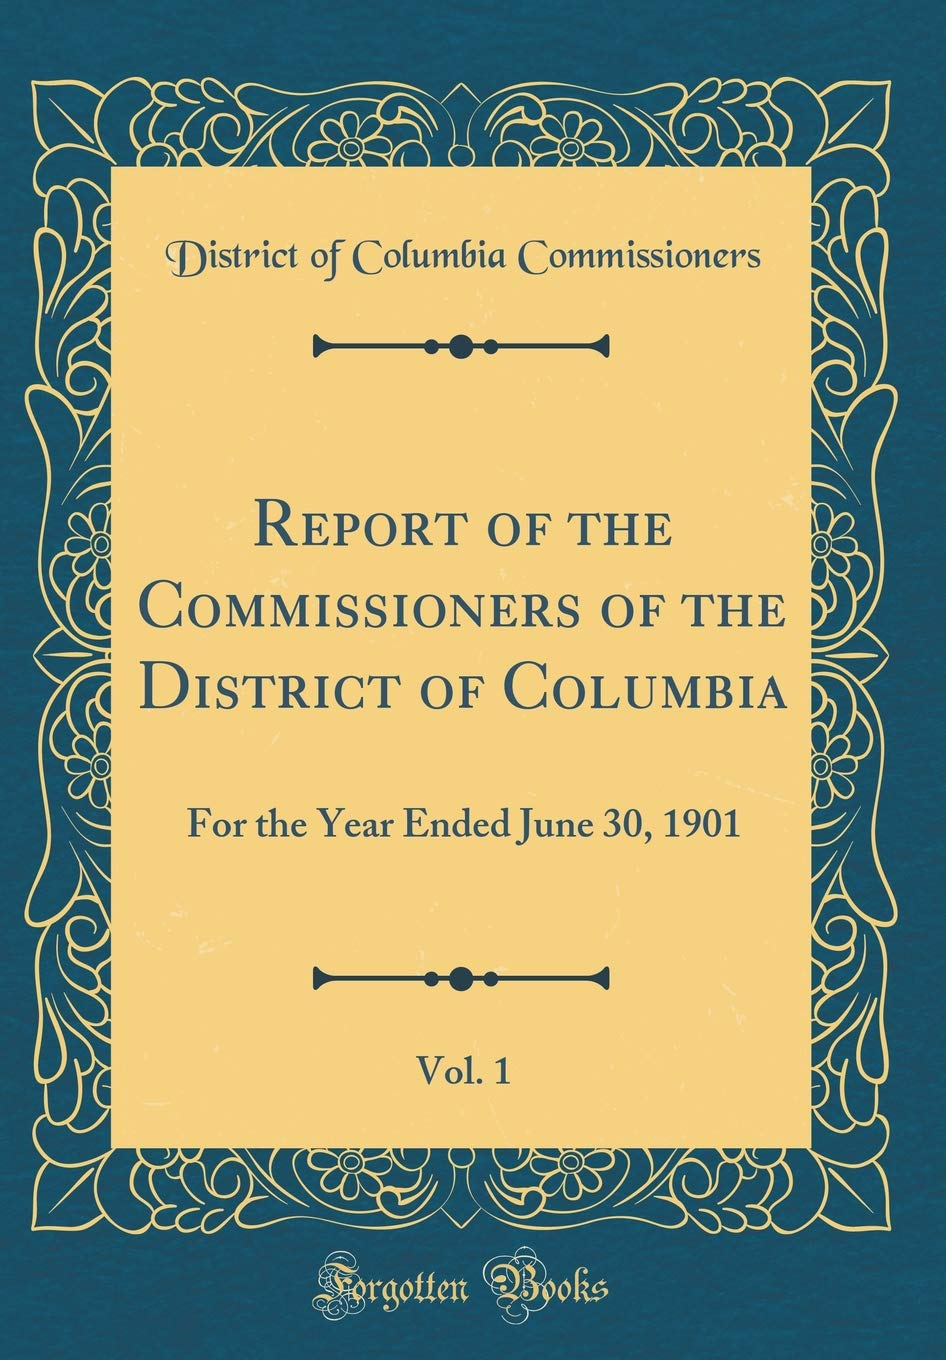 Report of the Commissioners of the District of Columbia, Vol. 1: For the Year Ended June 30, 1901 (Classic Reprint) pdf